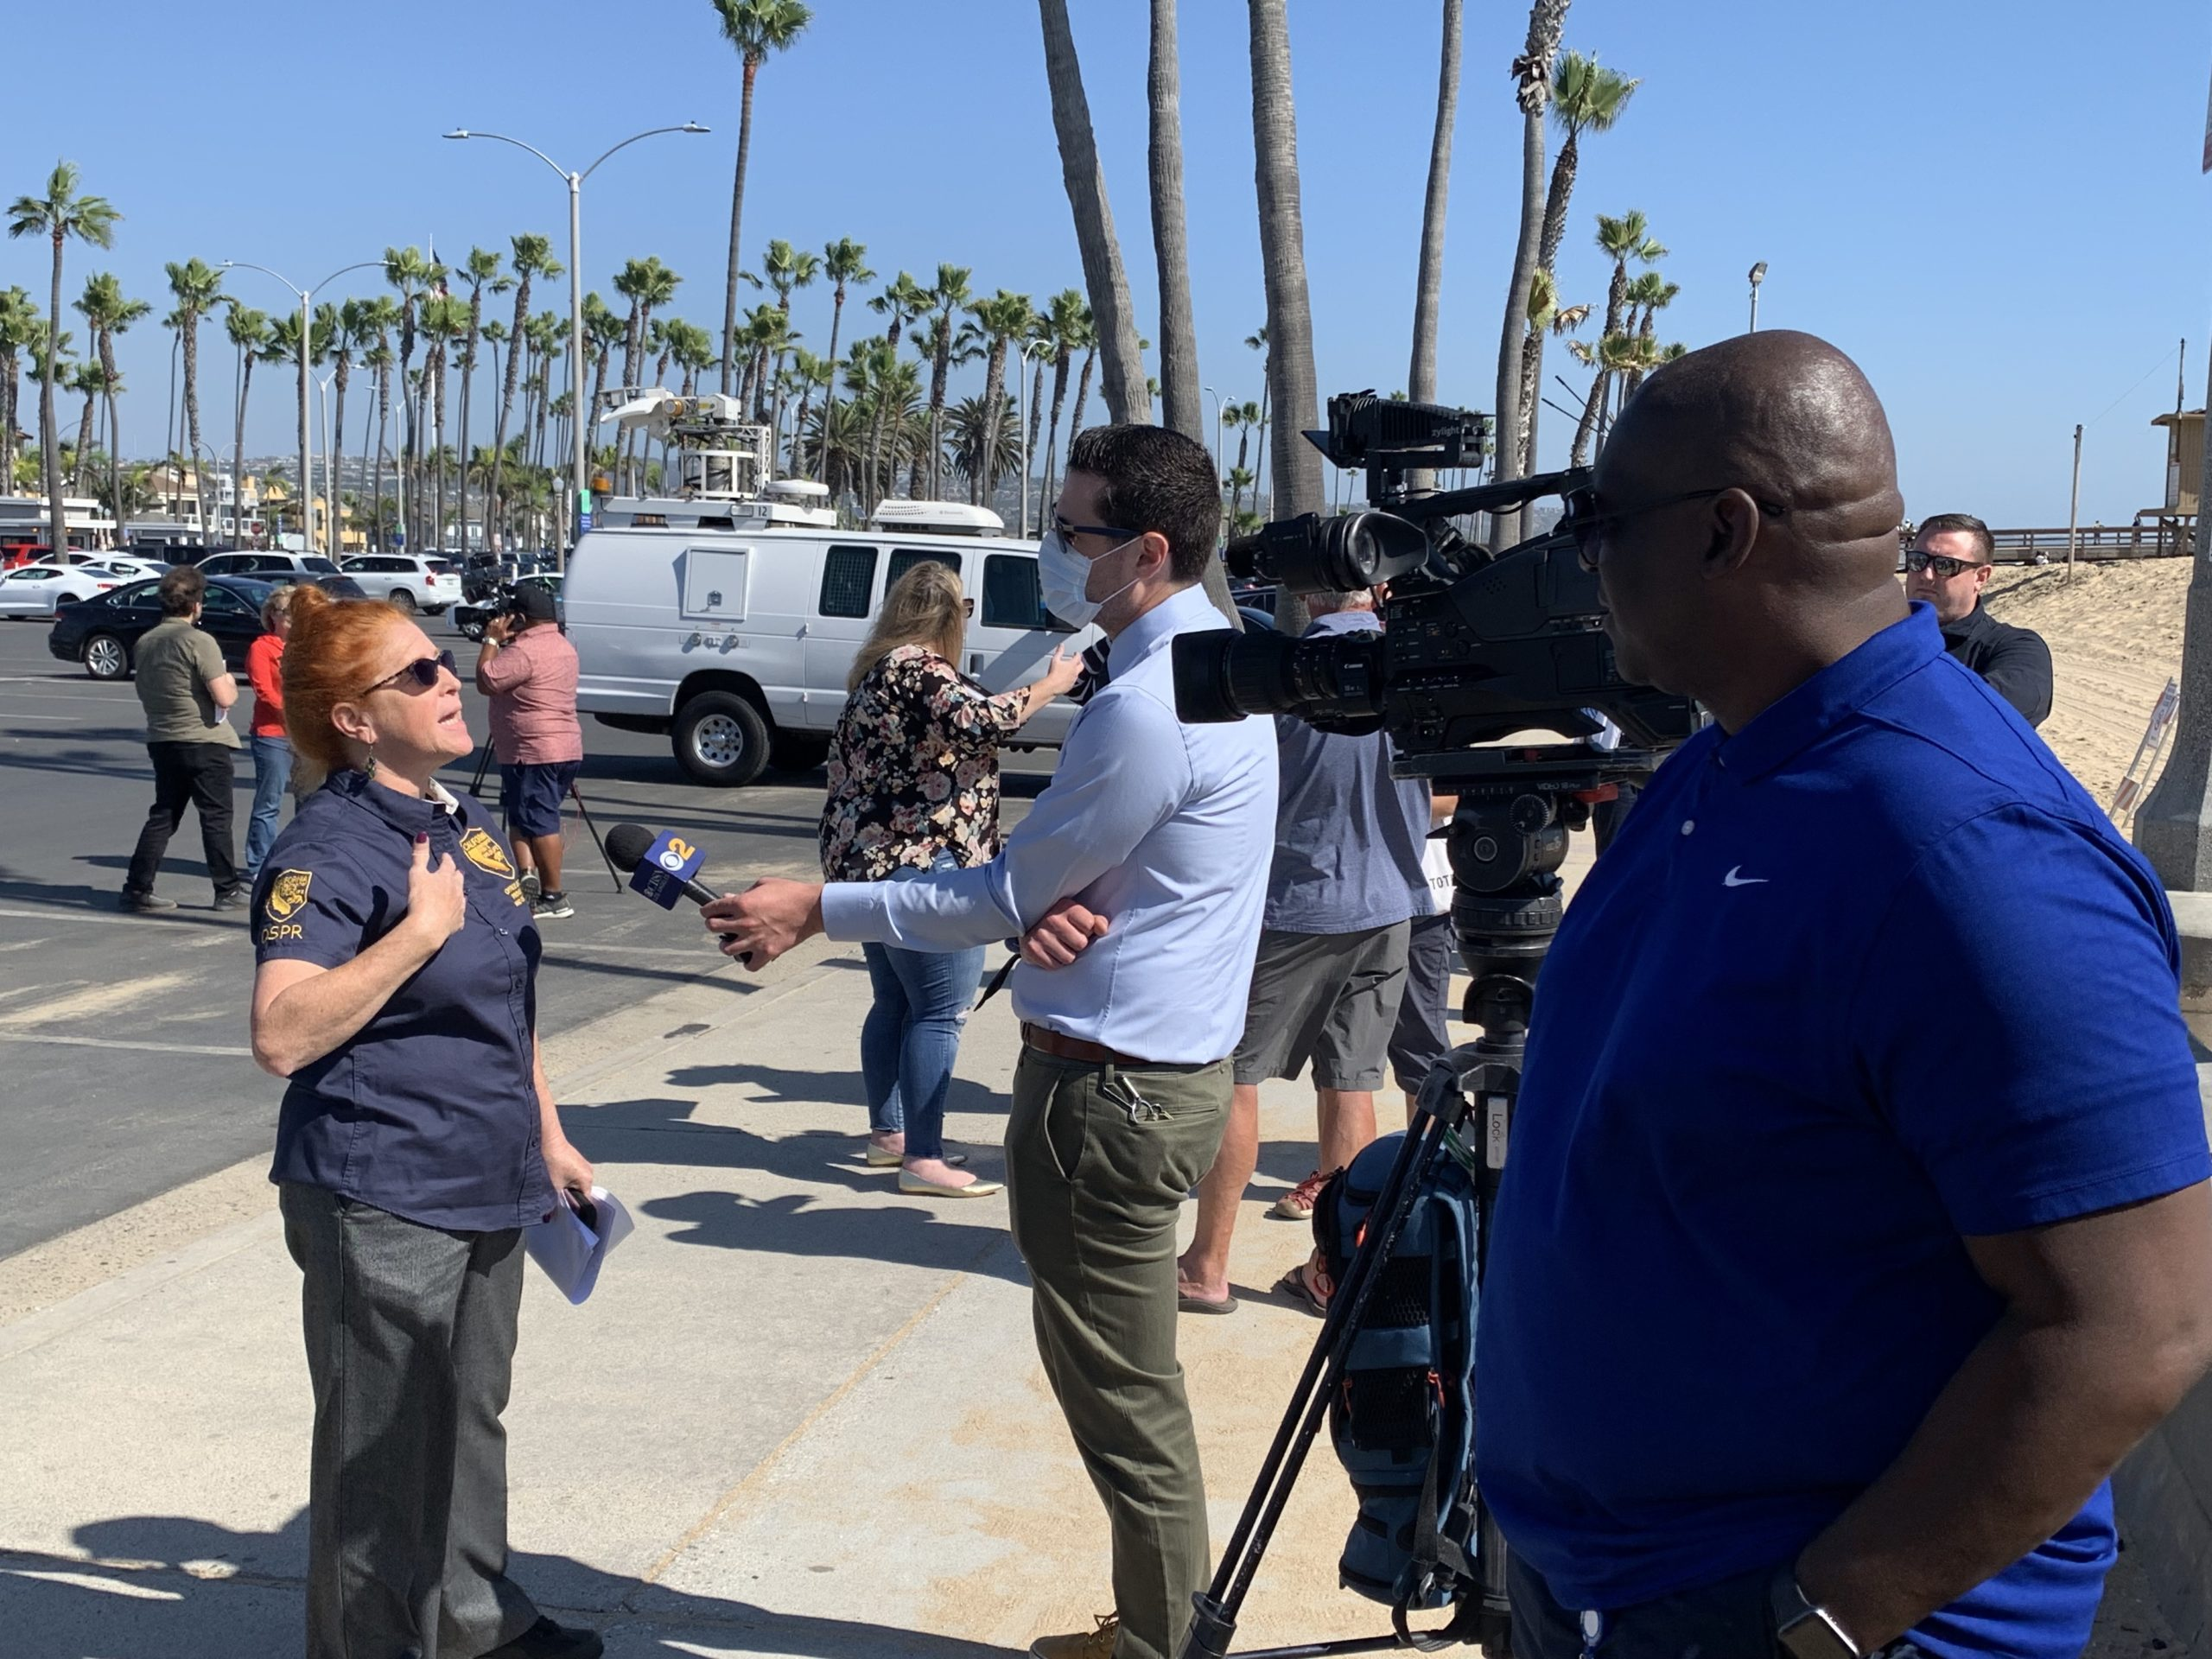 The Coast Guard and California Department of Fish and Wildlife's Office of Spill Prevention and Response provide information about the coastal oil cleanup response and techniques, at The Balboa Pier Municipal in Newport Beach, Calif.